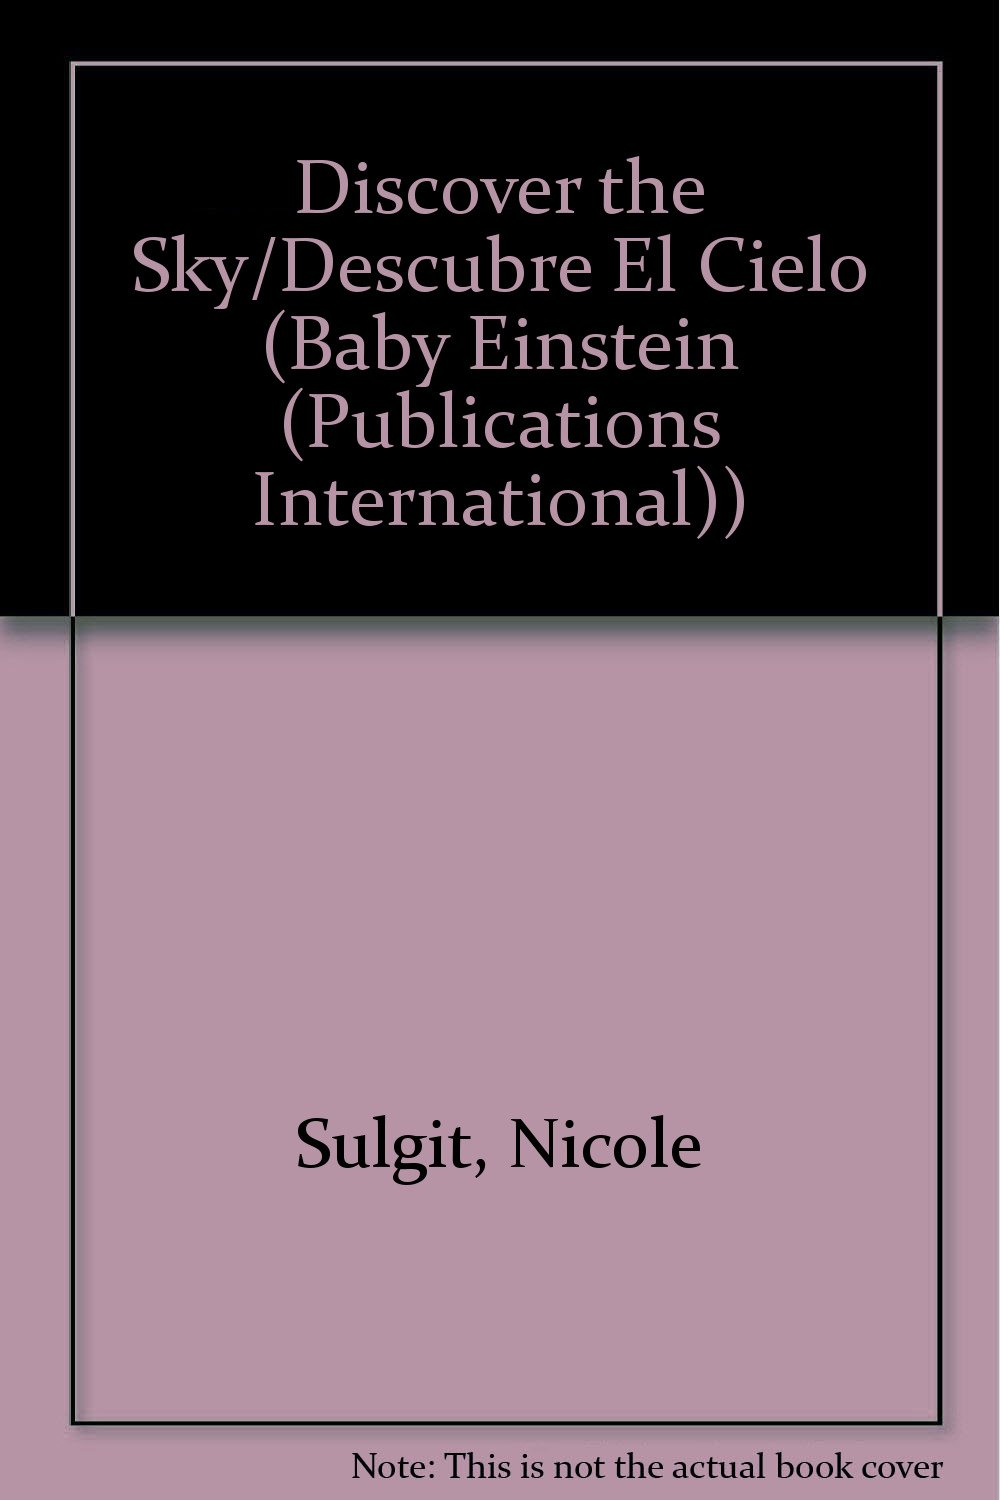 Discover the Sky/Descubre El Cielo (Baby Einstein (Publications International)) (English and Spanish Edition)